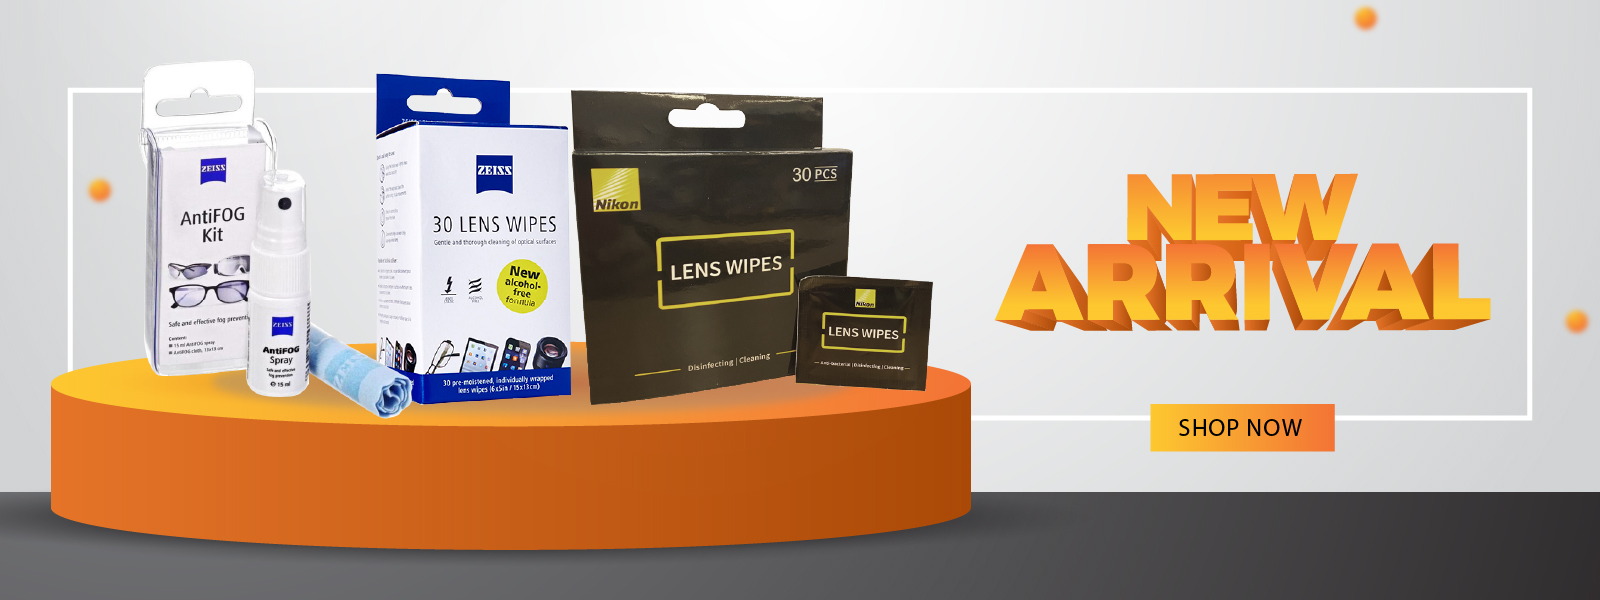 New arrival - lens care